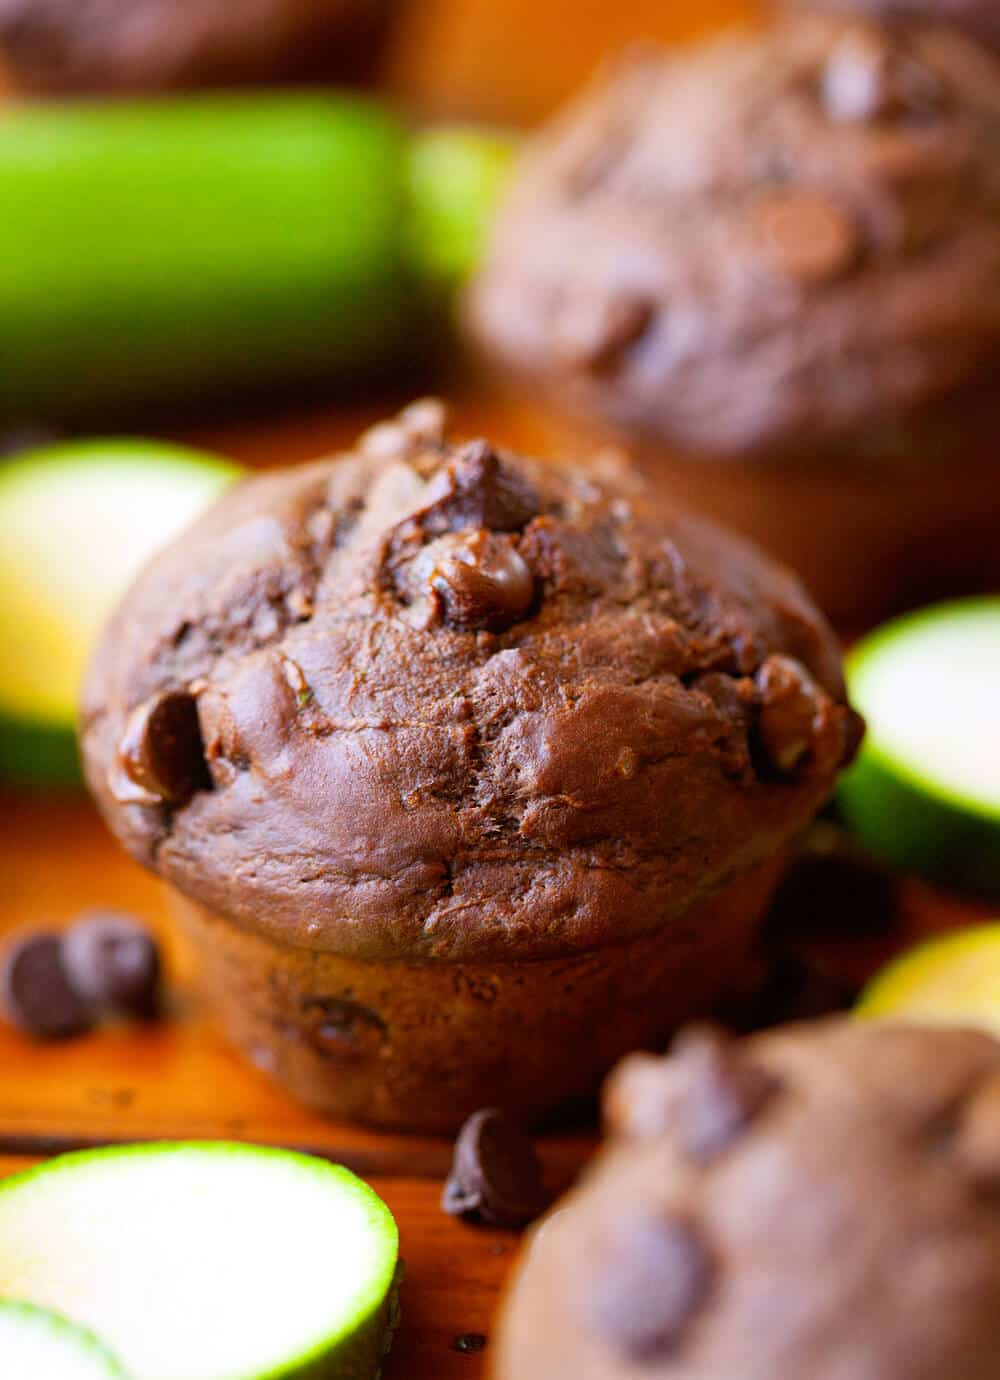 Close up image of a fresh double chocolate zucchini muffin on wooden background.